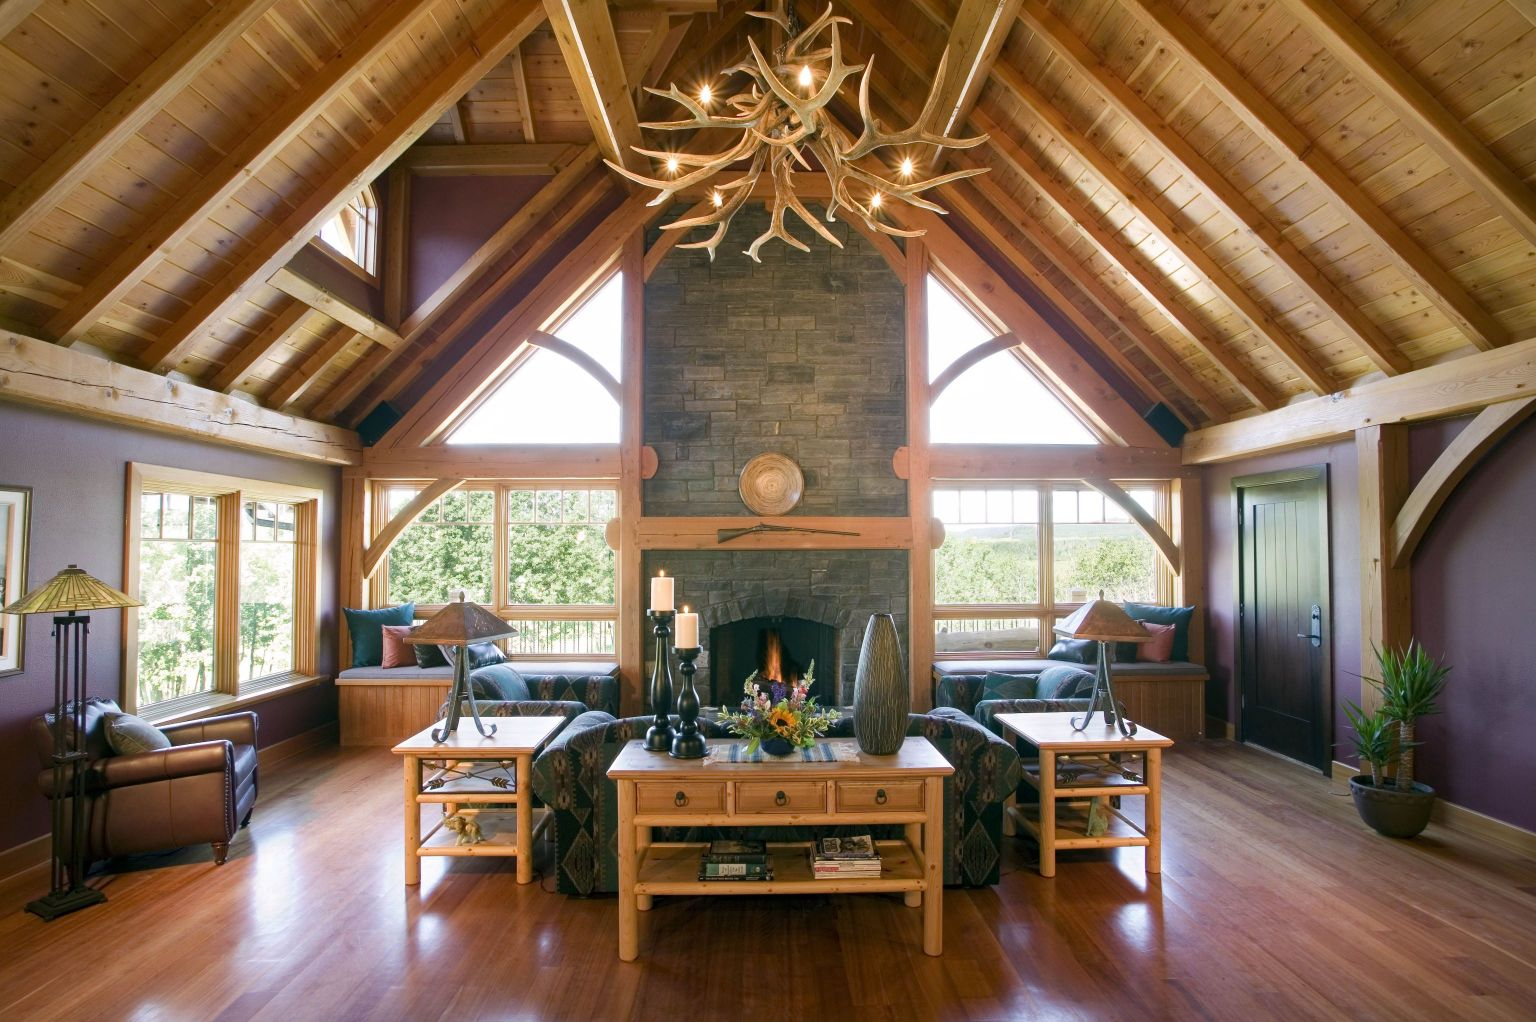 Marvelous best small timber frame homes design ideas modern pic for interior concept and styles xfile 24152